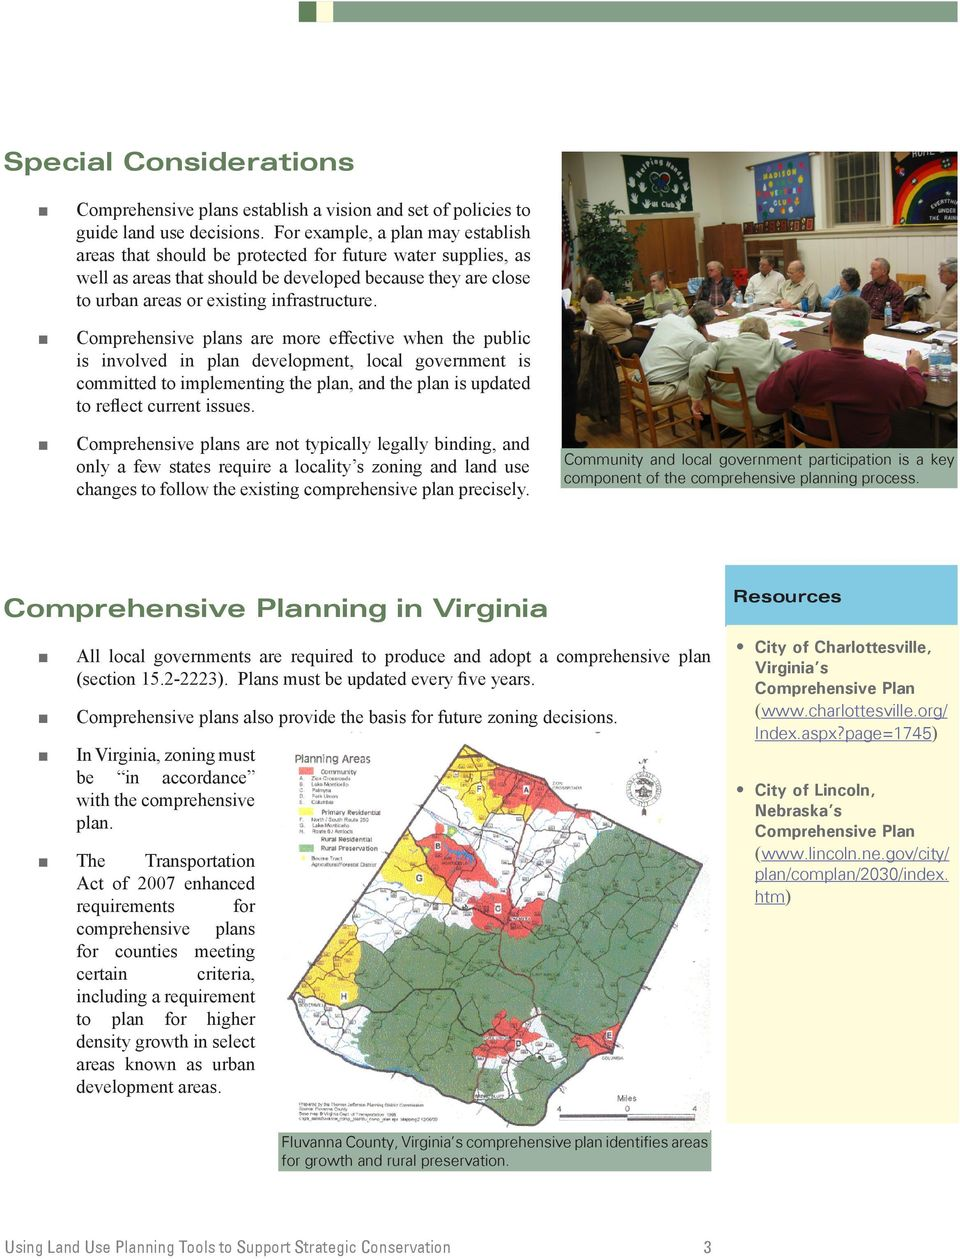 + Comprehensive plans are more effective when the public is involved in plan development, local government is committed to implementing the plan, and the plan is updated to reflect current issues.